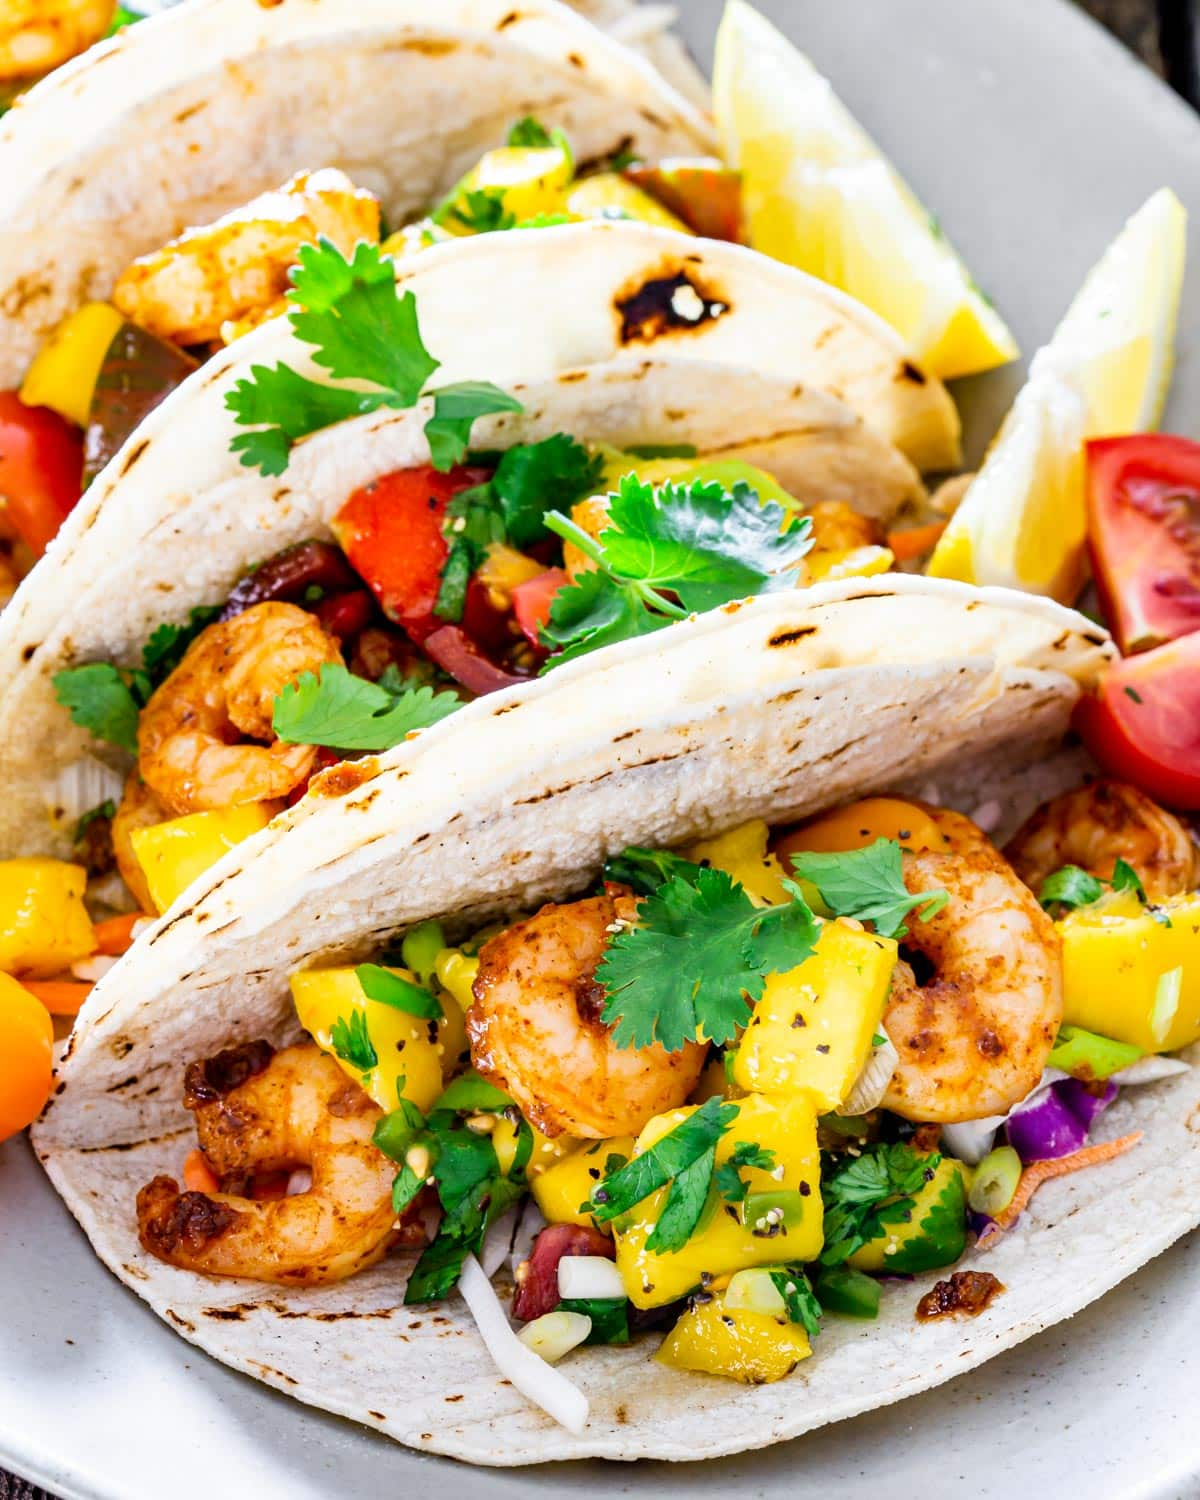 sideview shot of a plate full of cajun shrimp tacos with mango salsa